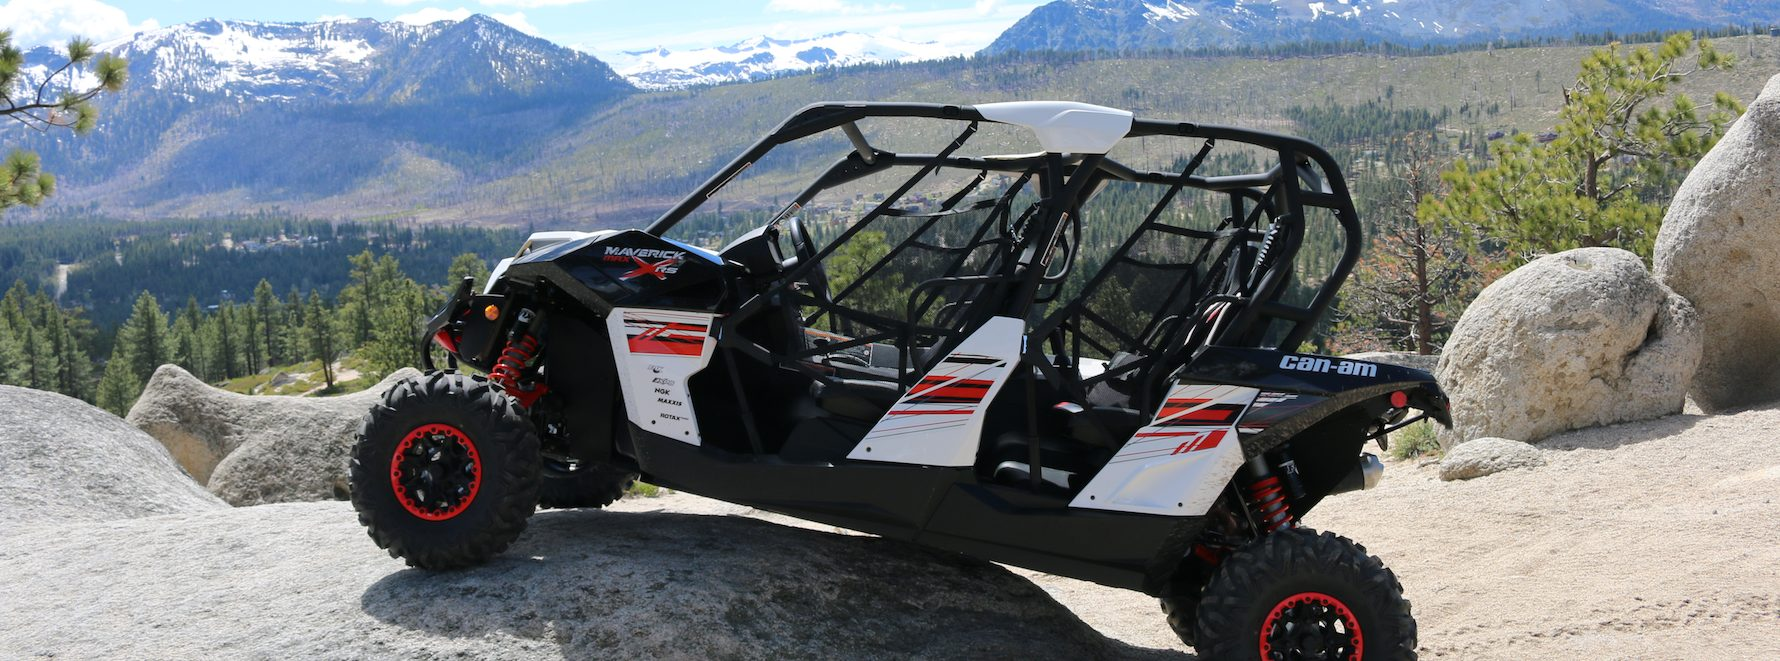 off-roading-lake-tahoe-back-country-tours